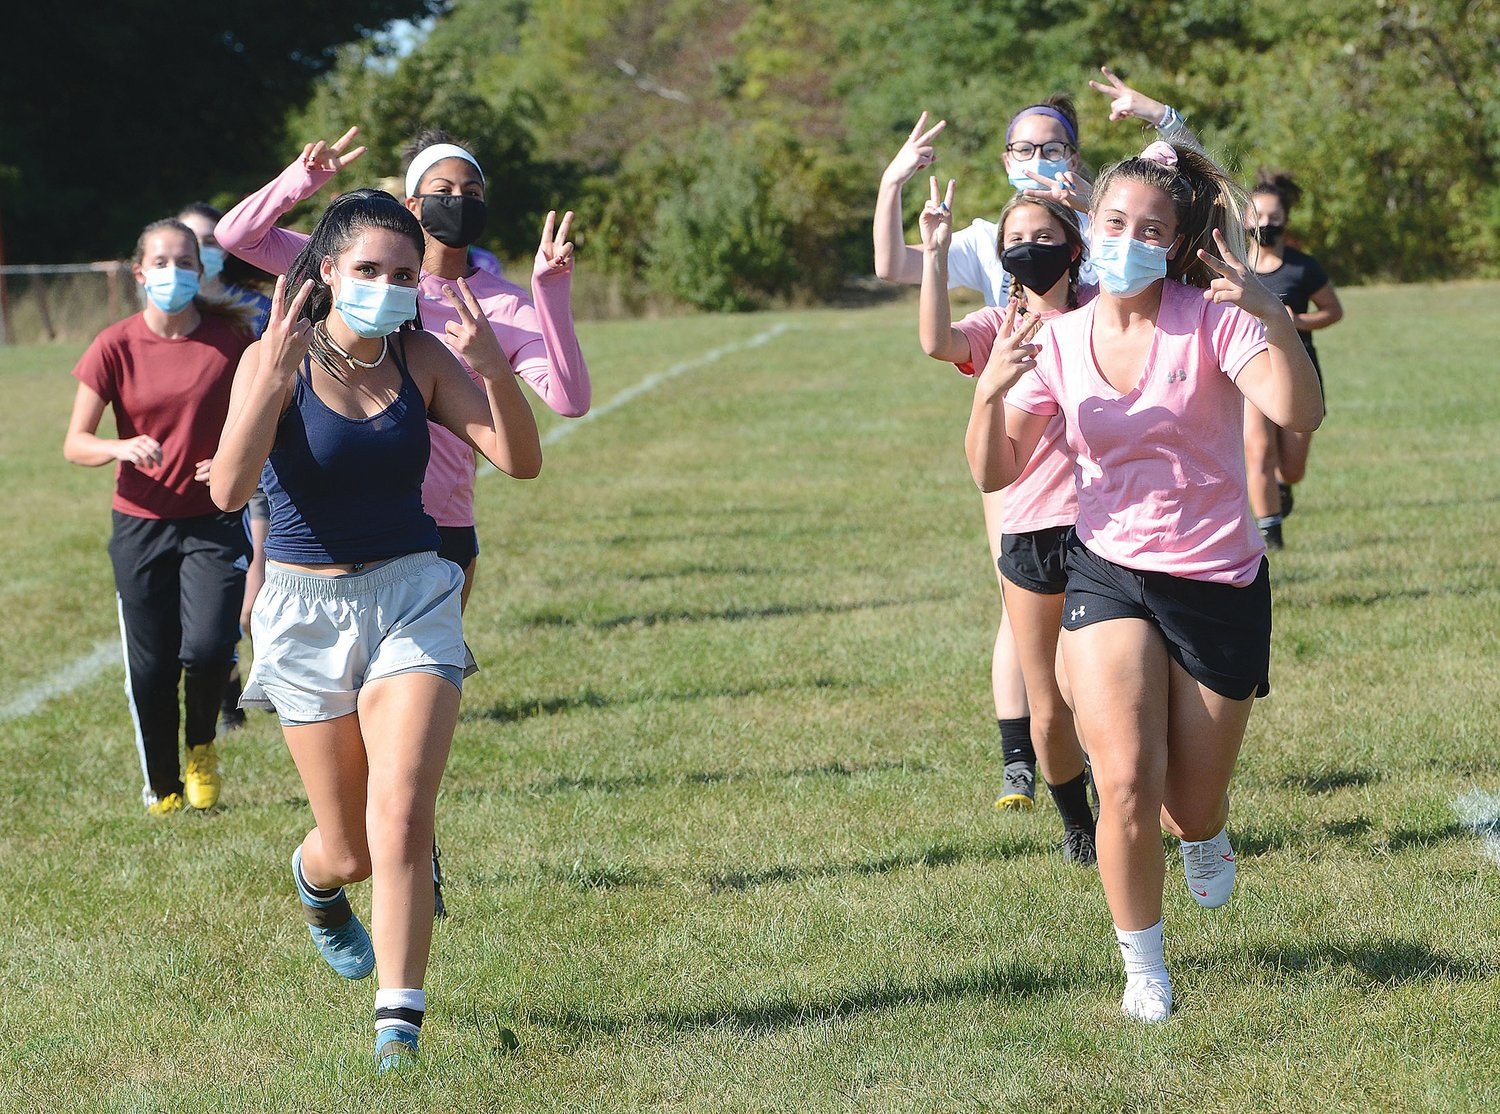 Tiverton girls soccer captains Sydney Silvia (left) and Mariah Ramos (right) and teammates celebrate their return to the field as they jog at the start of practice Monday.